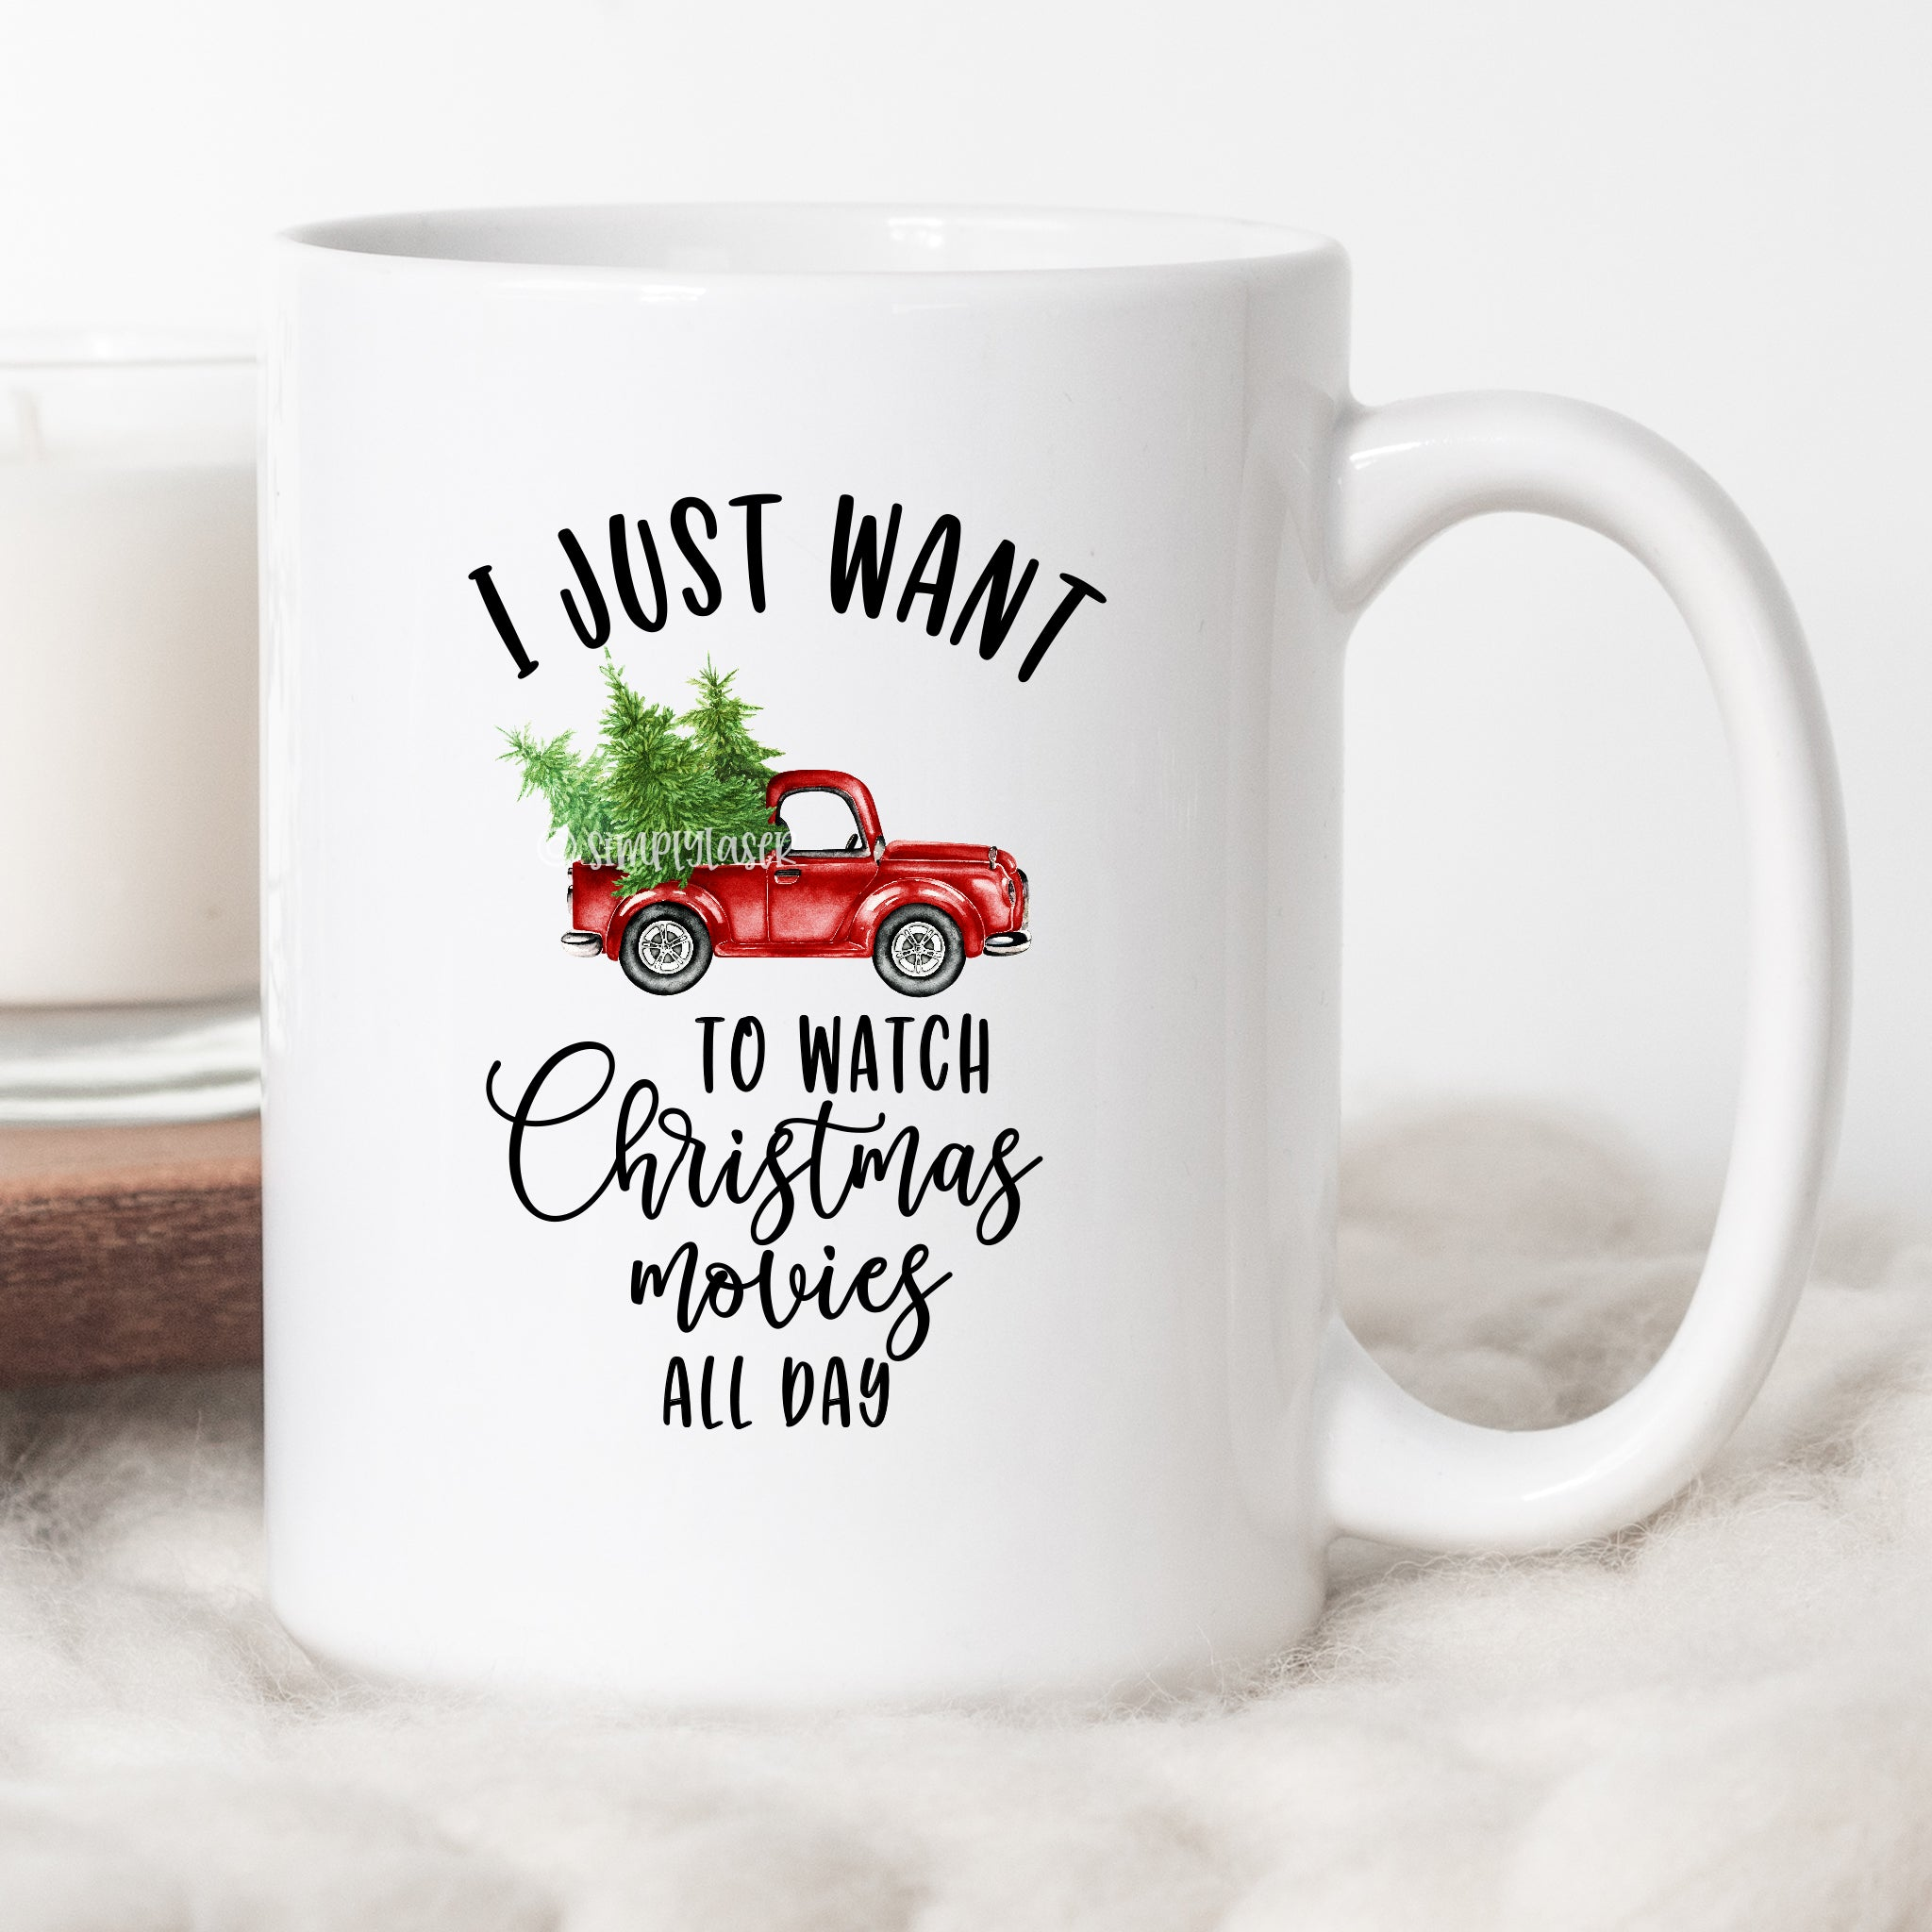 I Just Want To Watch Christmas Movies All Day Coffee Mug